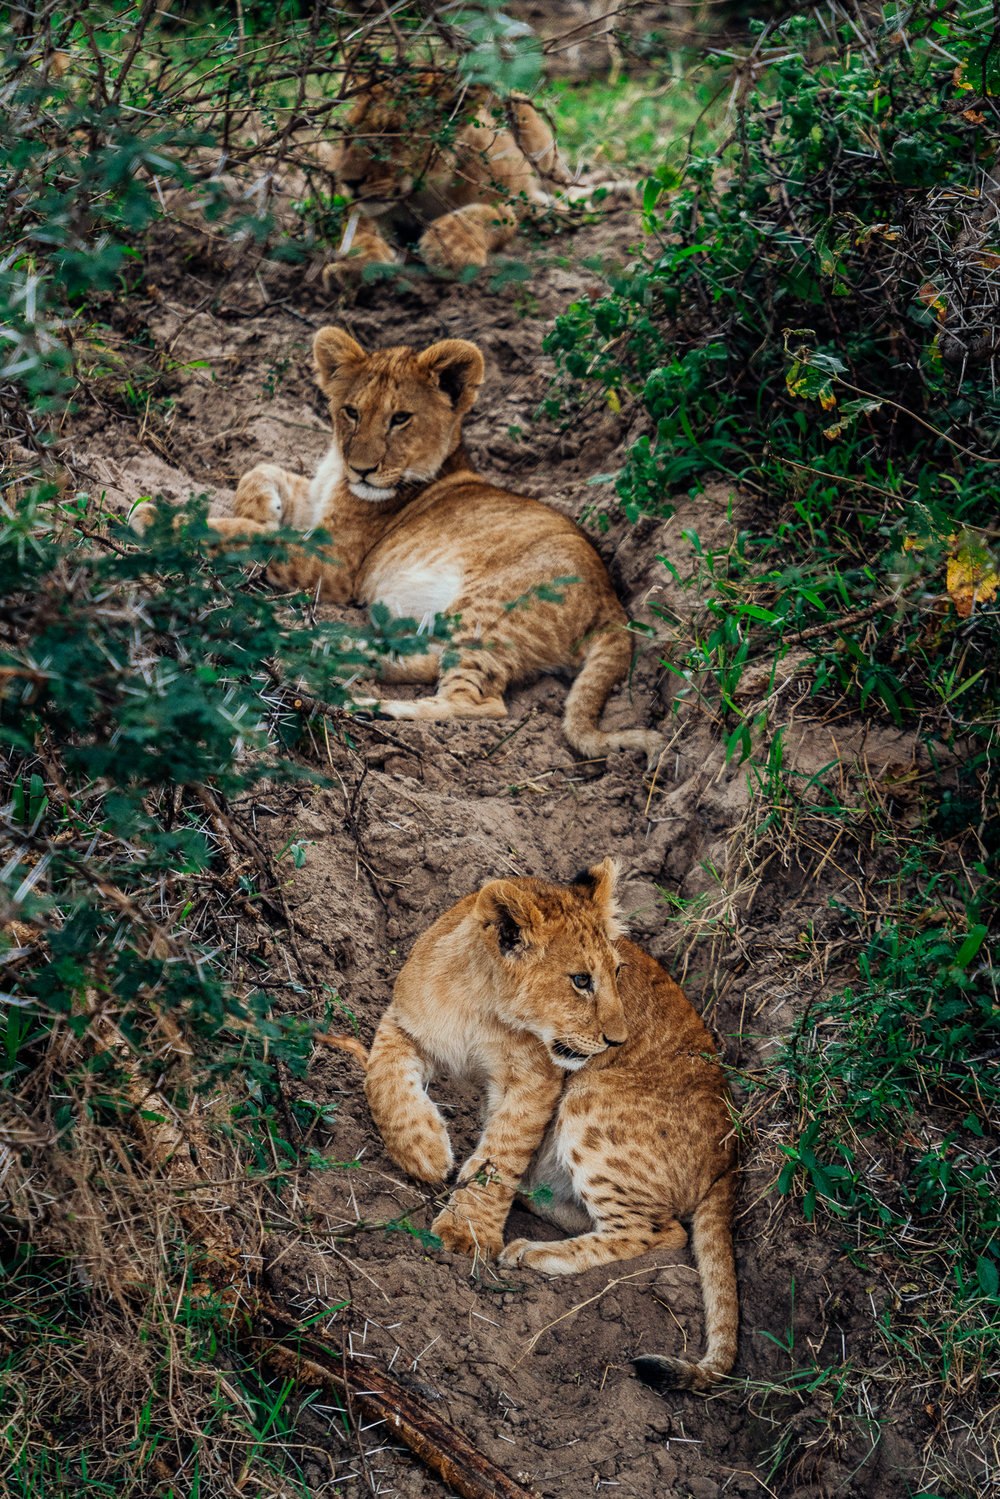 Lion cubs on safari in Kenya, Africa Ph. Dave Krugman